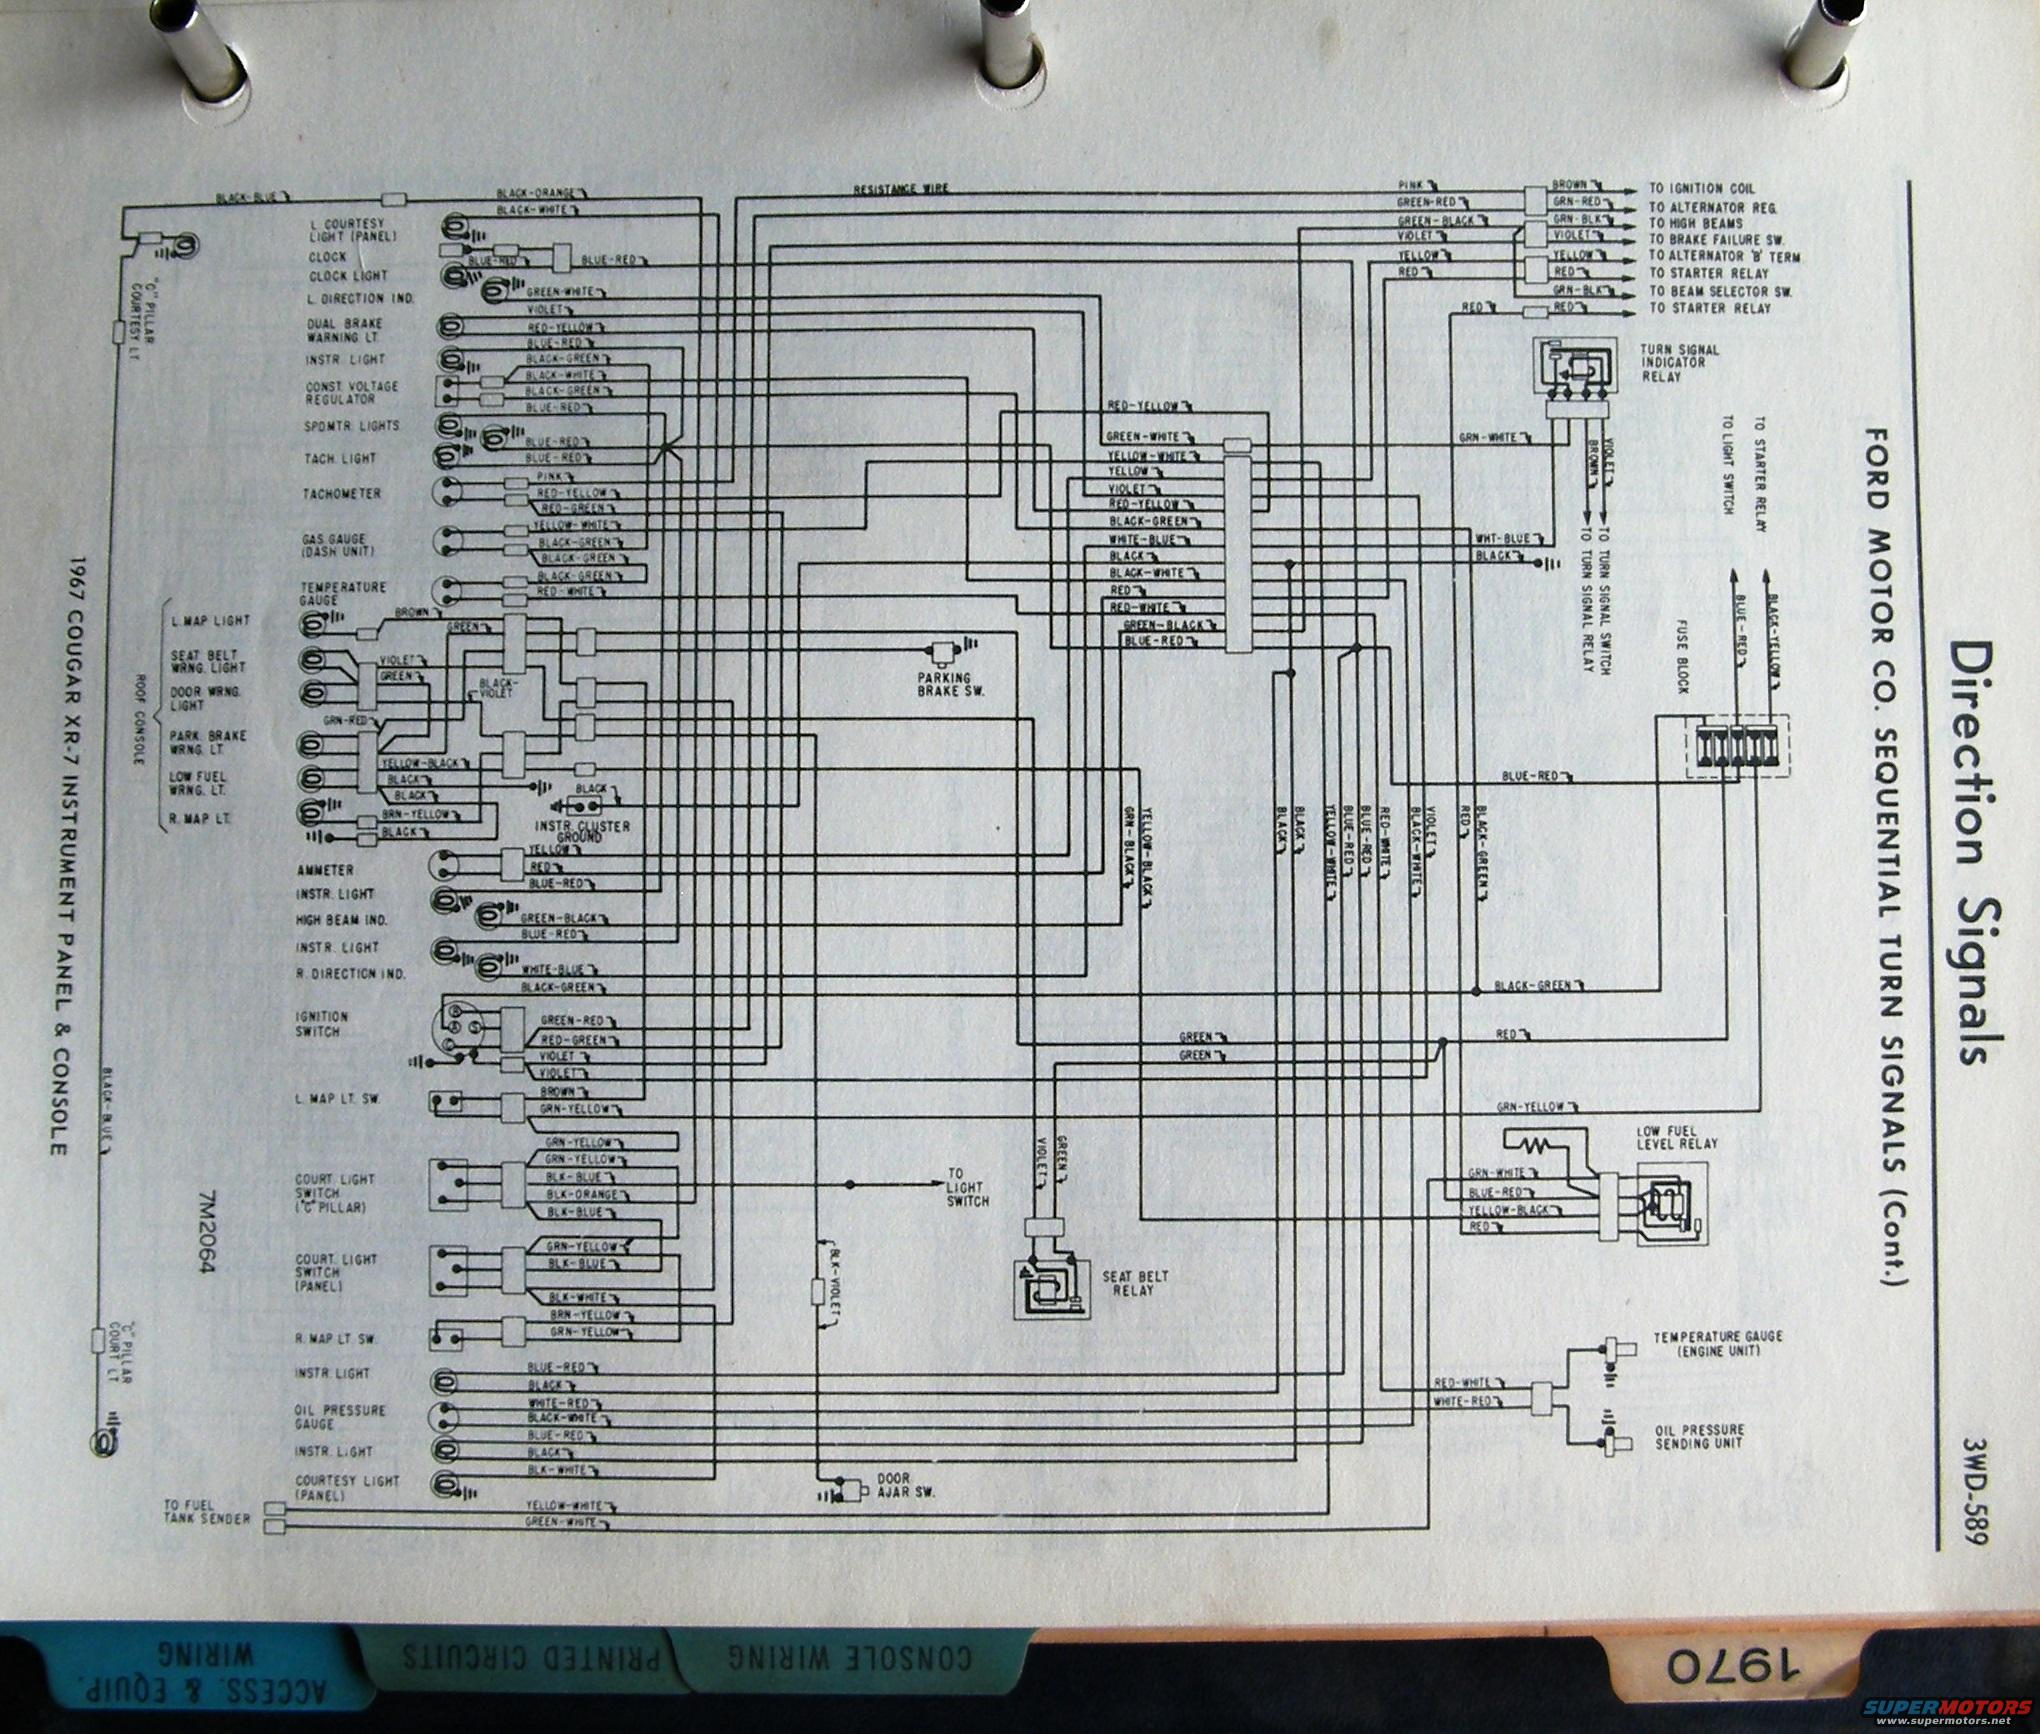 wiring diagram 1967 xr7 1968 cougar xr7 dash to headlights starter solenoid wire harness 2002 mercury cougar wiring diagram at bayanpartner.co